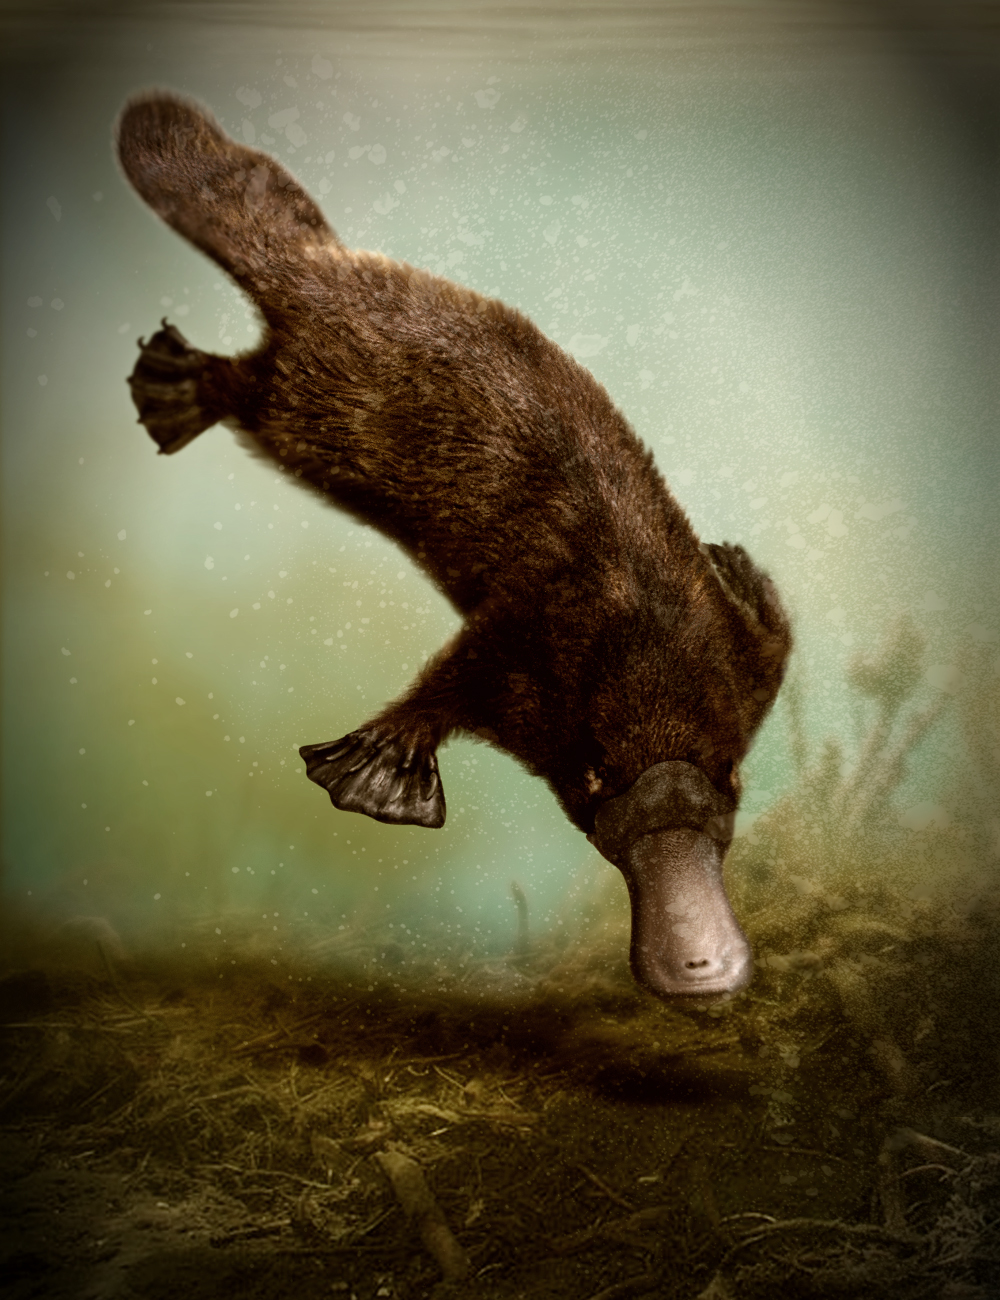 Platypus by AM by: Alessandro_AM, 3D Models by Daz 3D